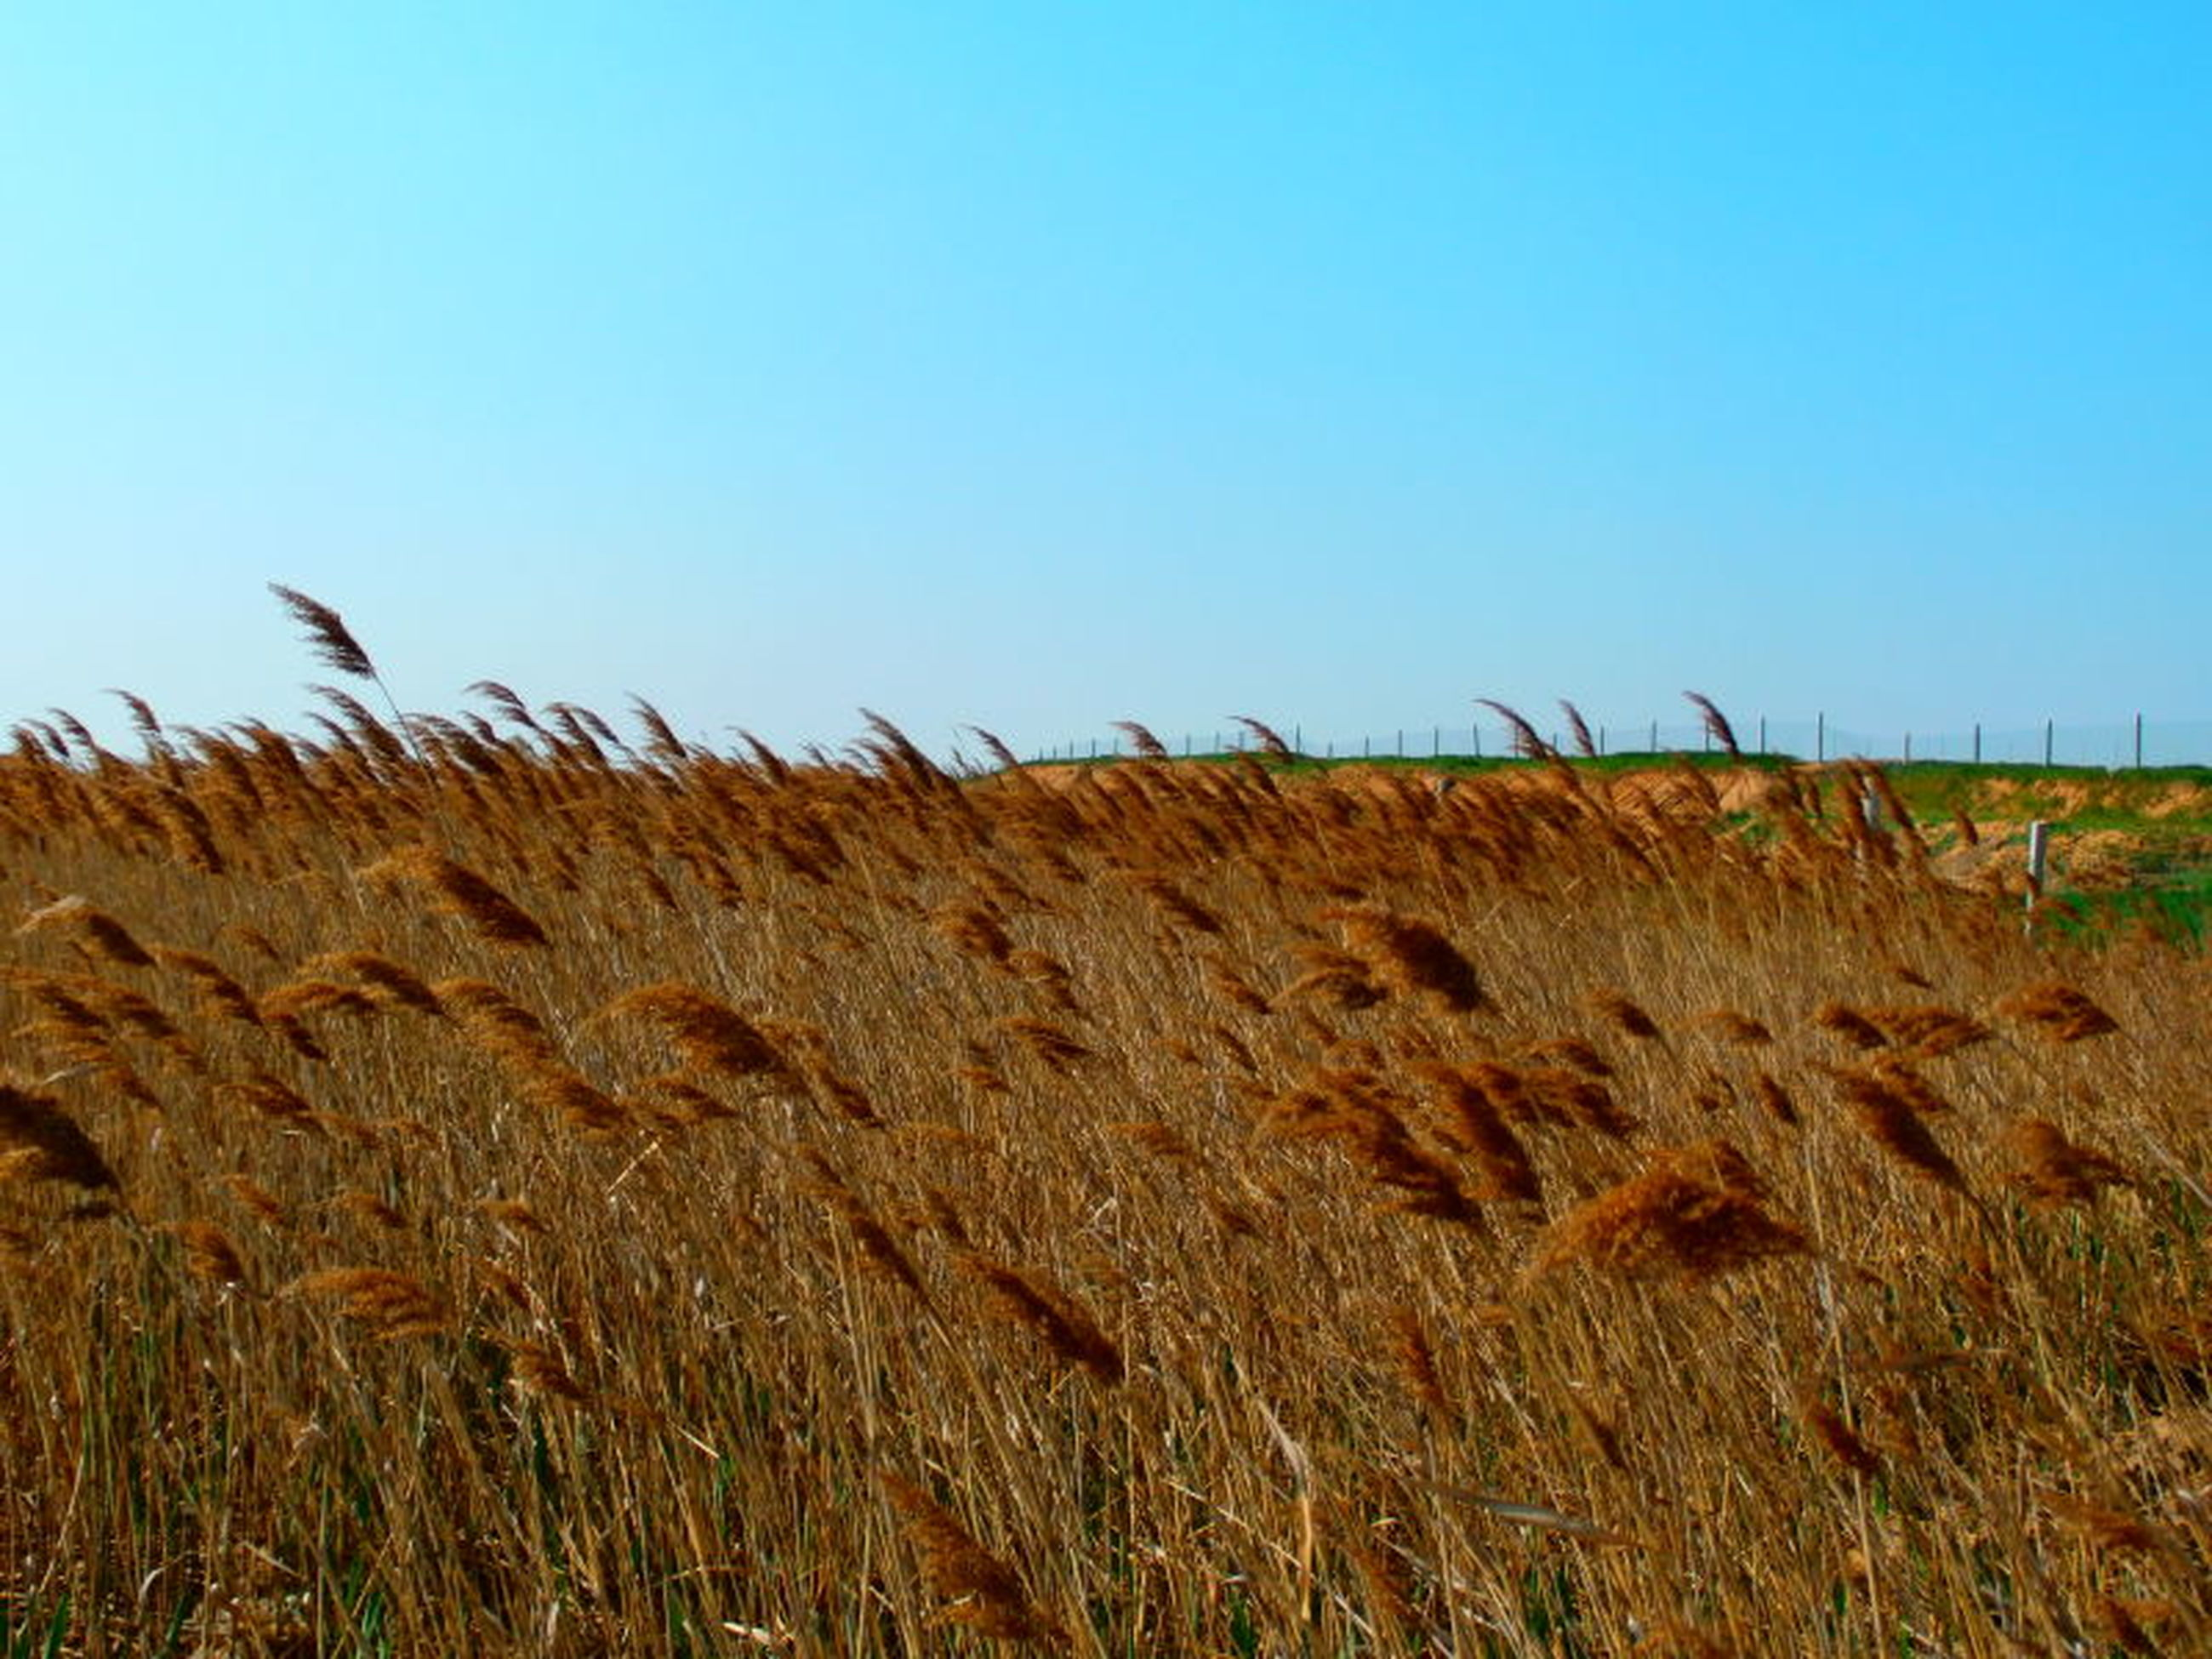 clear sky, copy space, field, grass, blue, landscape, tranquility, tranquil scene, nature, dry, growth, rural scene, agriculture, plant, beauty in nature, scenics, horizon over land, cereal plant, day, crop